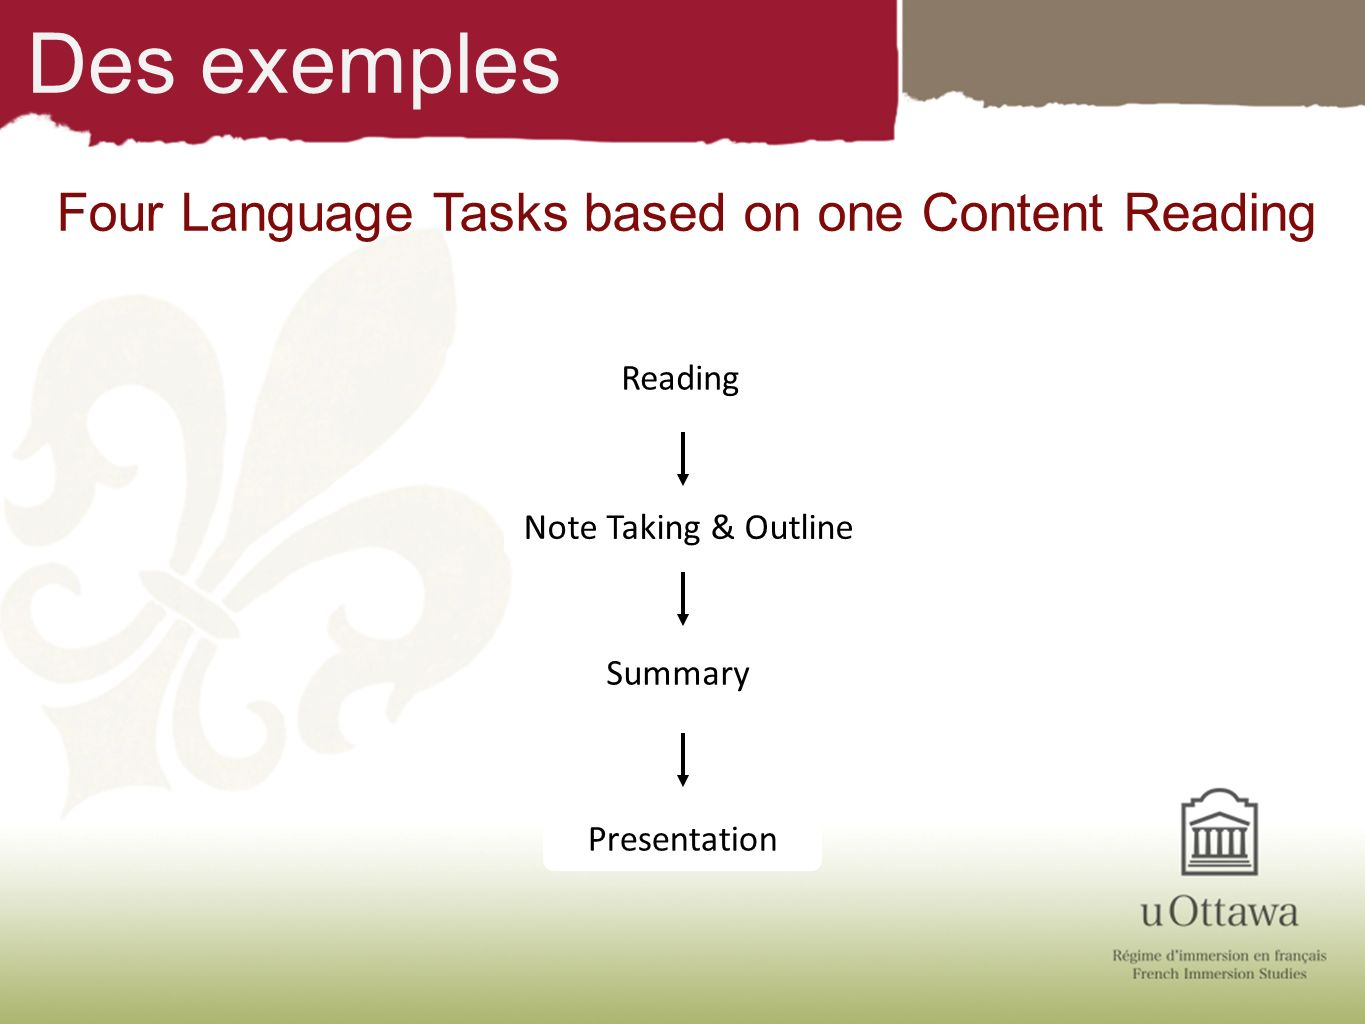 Four Language Tasks based on one Content Reading